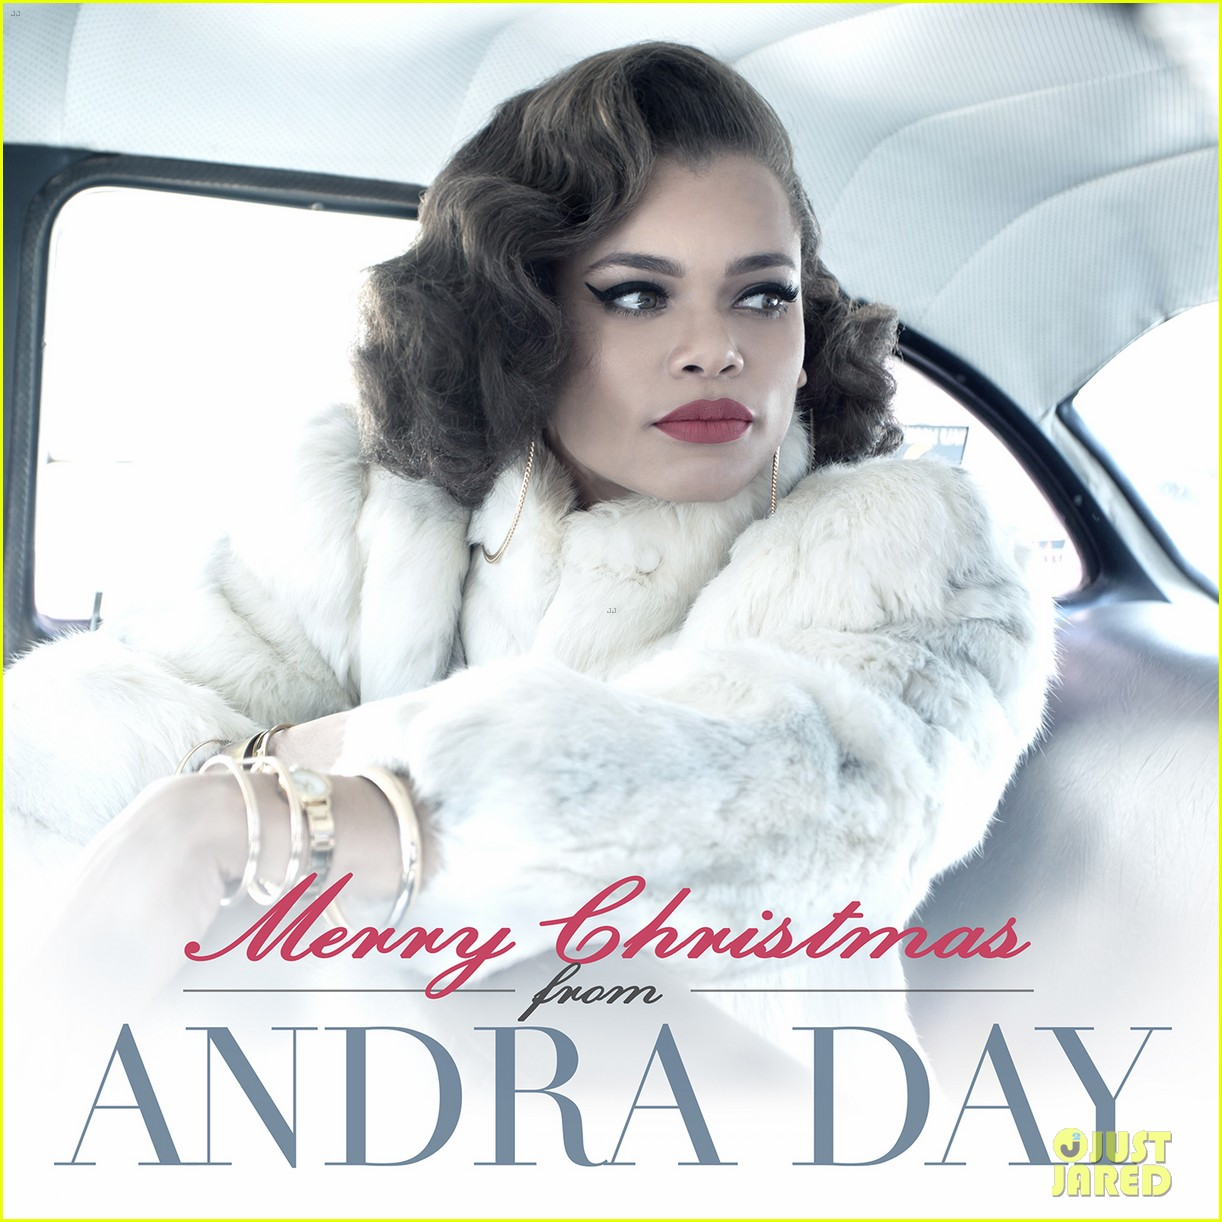 Andra Day: Andra Day Releases New Holiday EP, 'Merry Christmas From